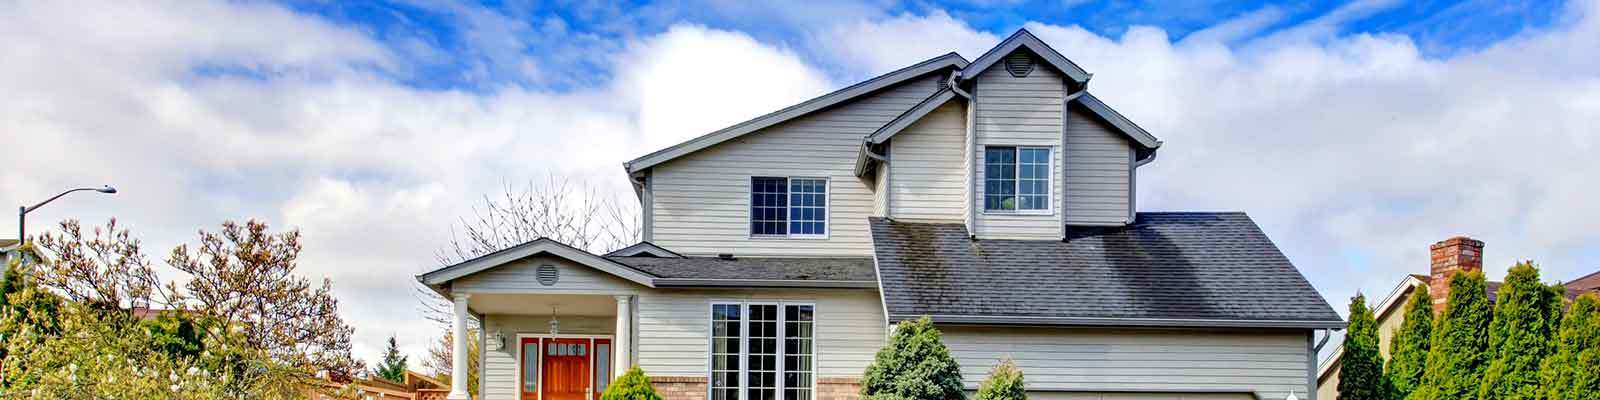 Calgary Elite Roofing home